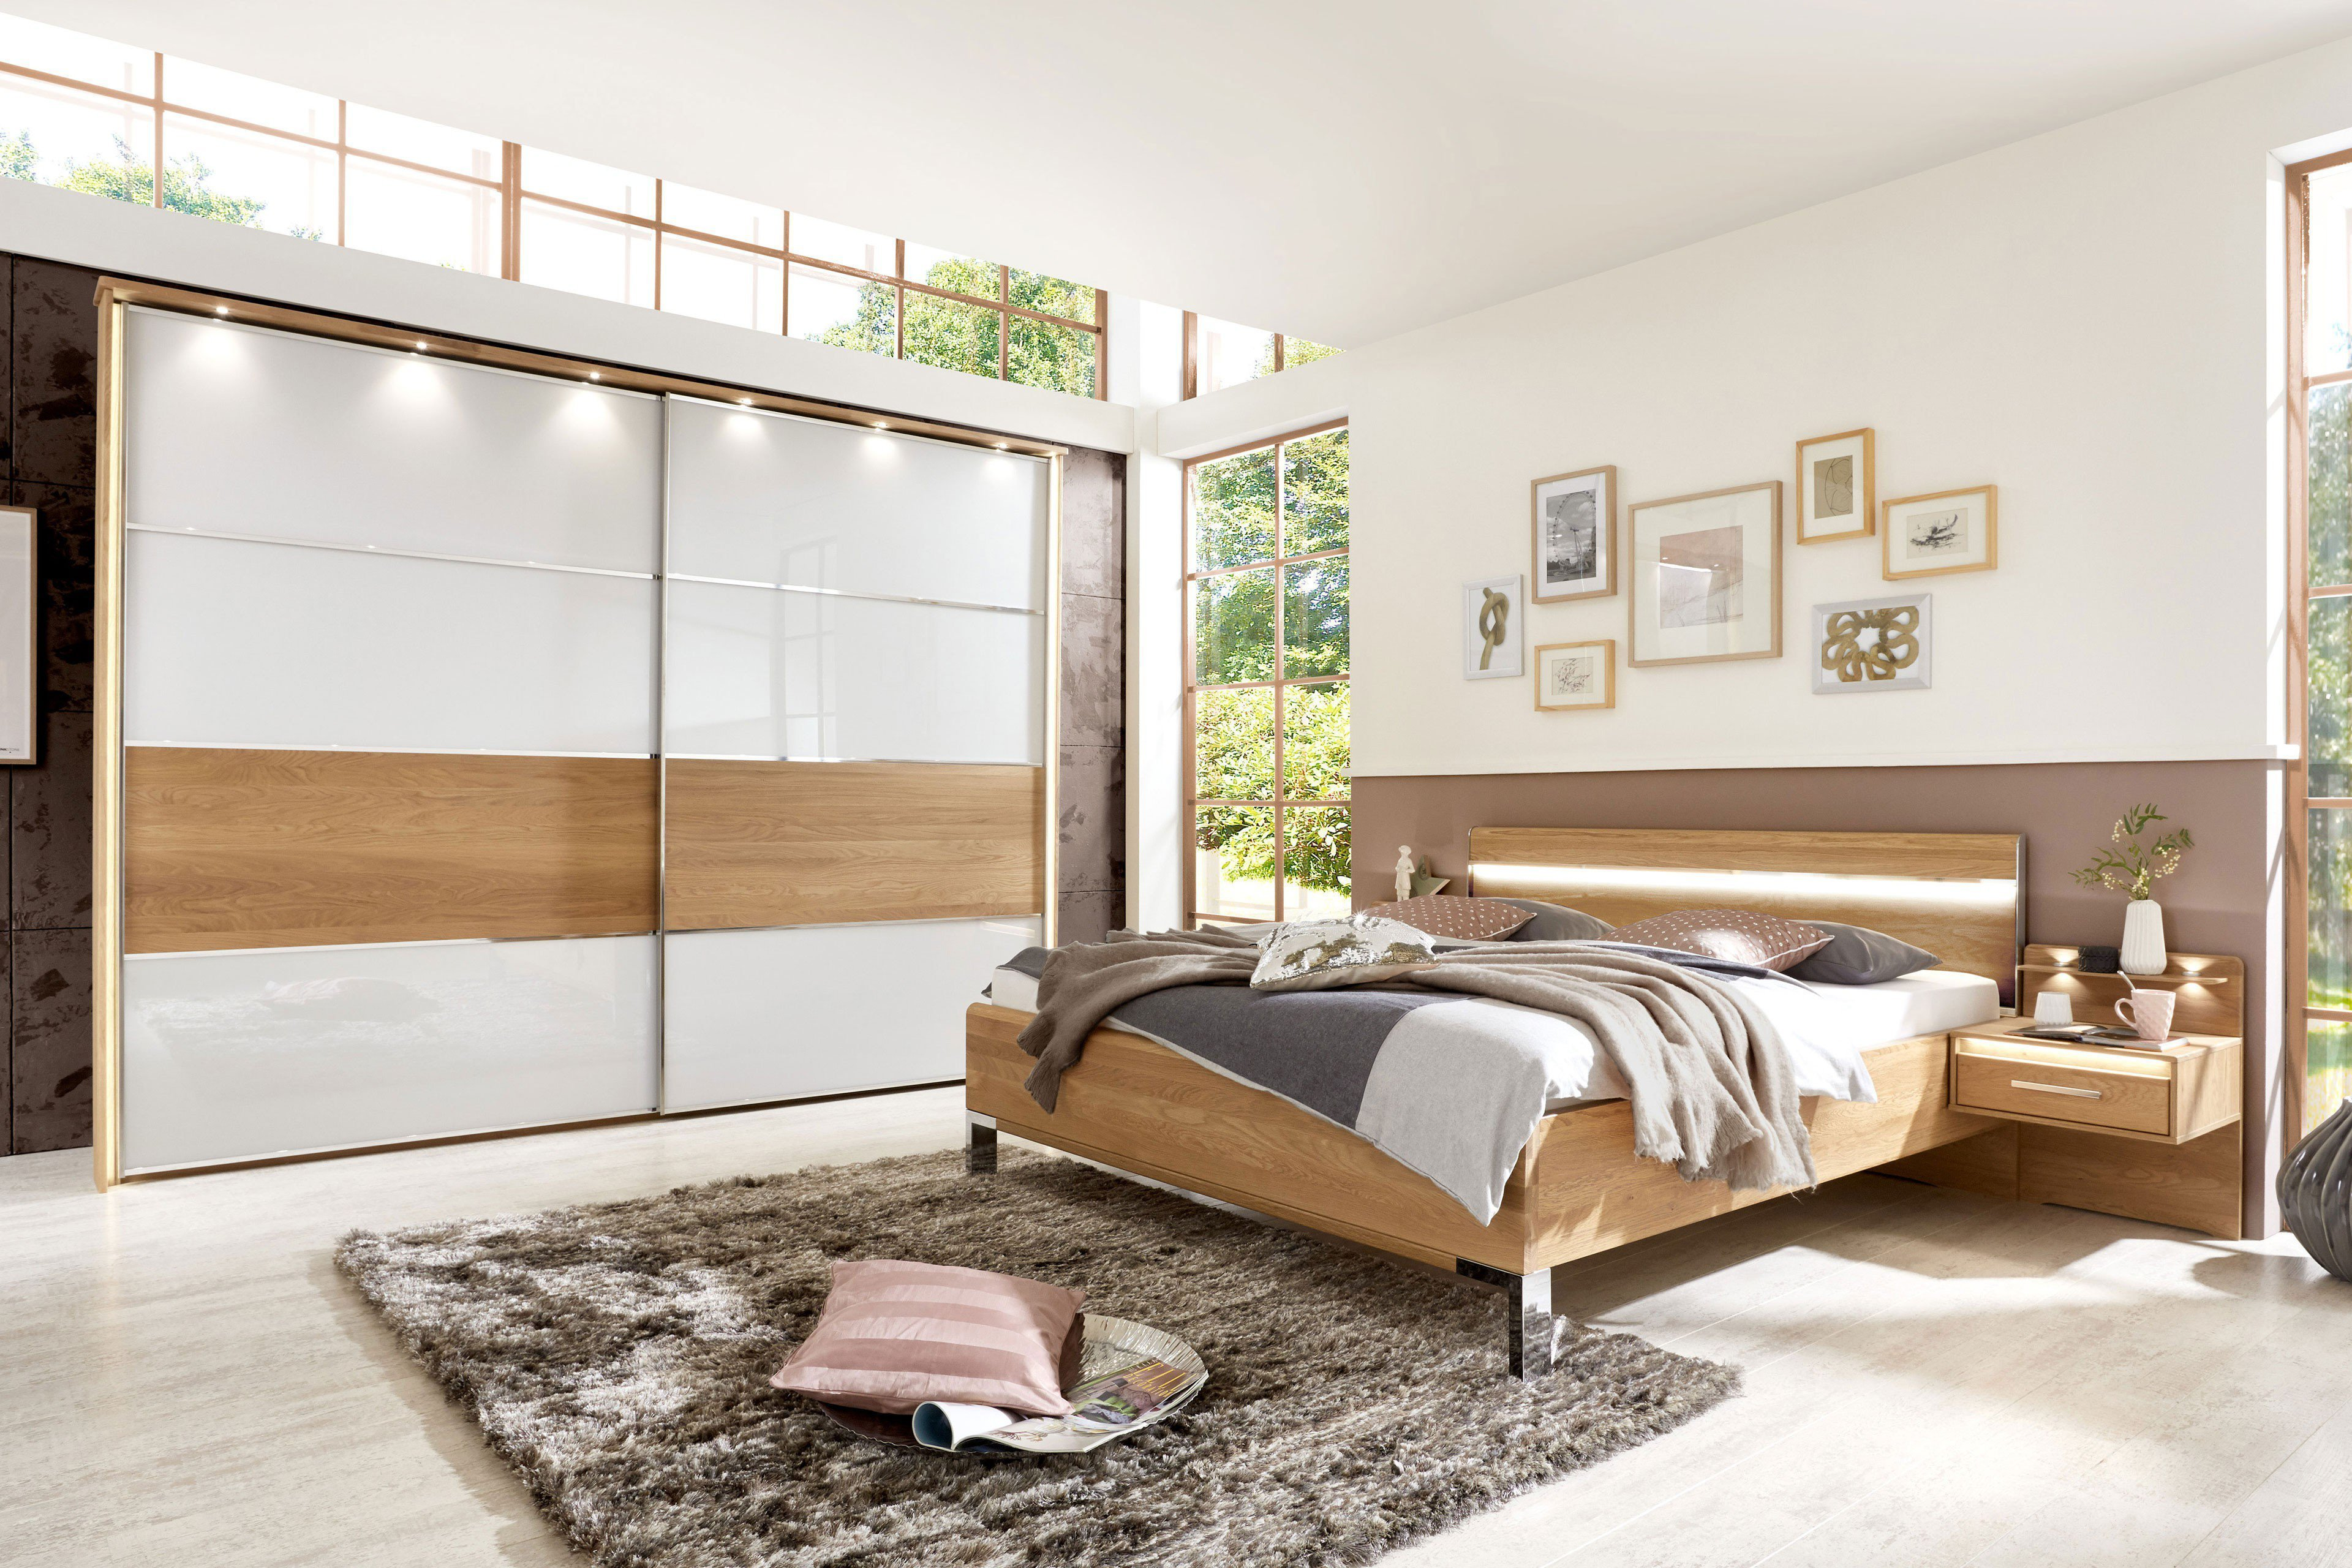 wiemann palermo schlafzimmer eiche teilmassiv m bel letz ihr online shop. Black Bedroom Furniture Sets. Home Design Ideas